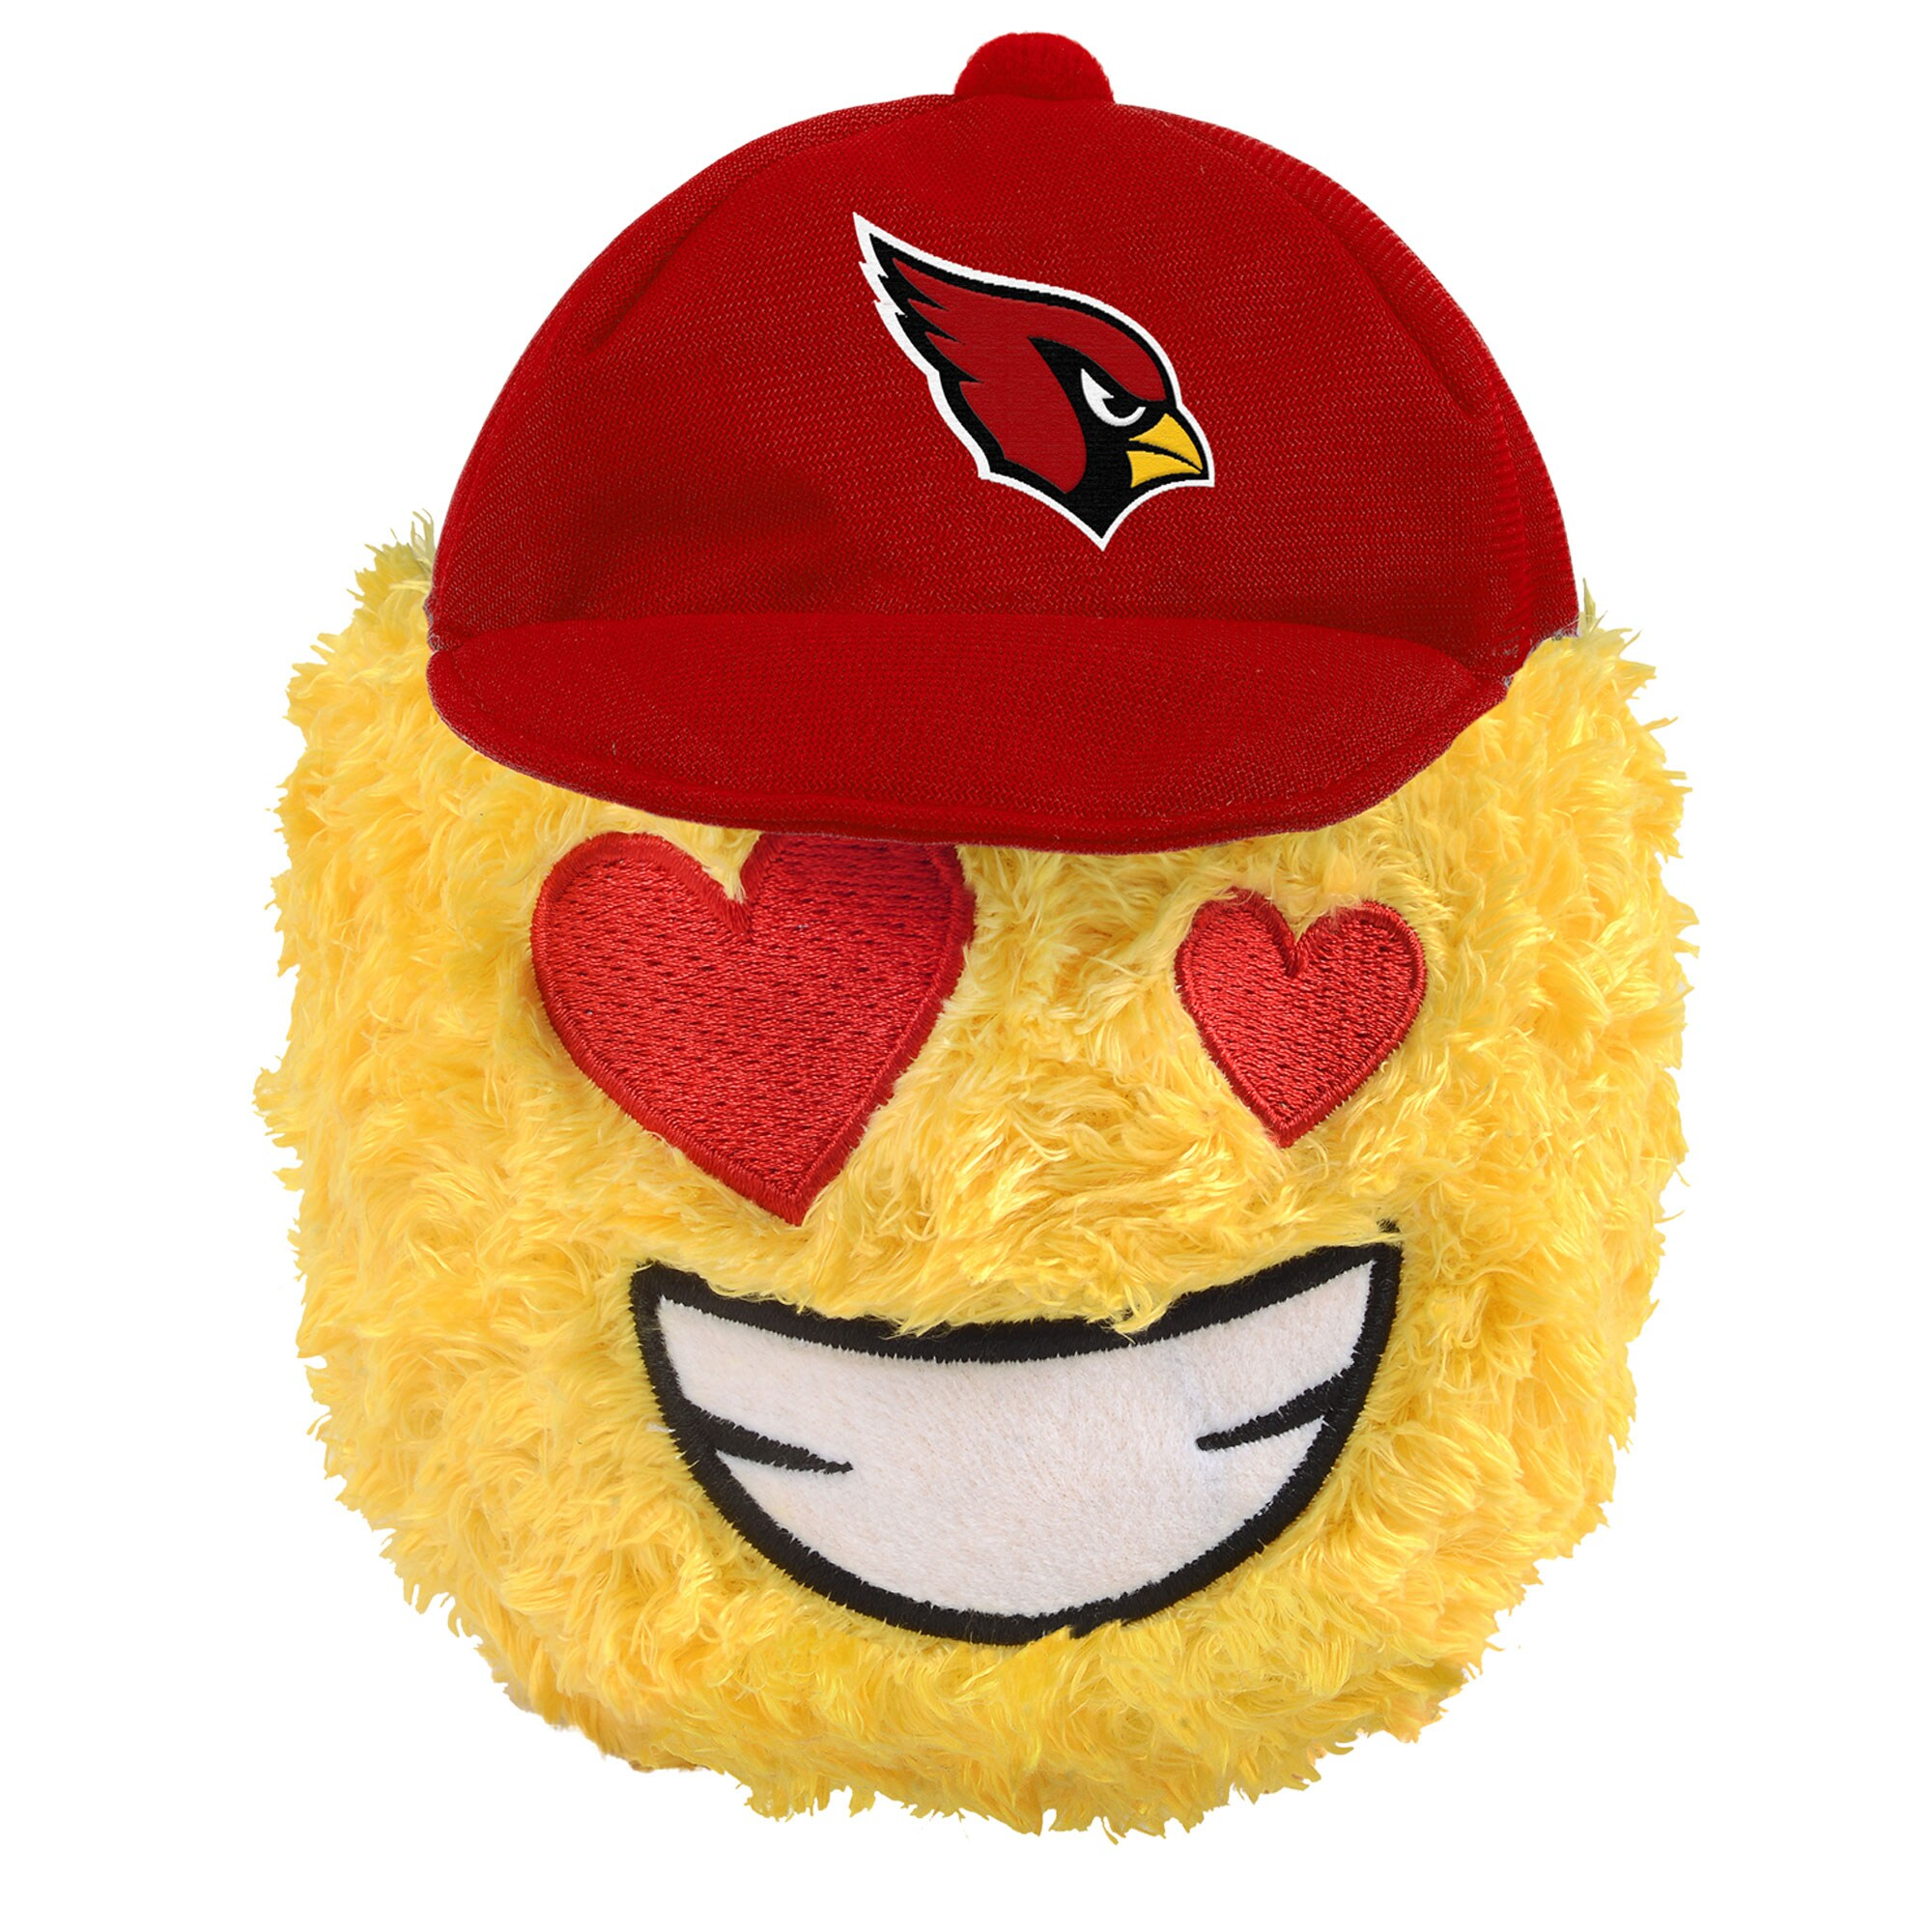 "Arizona Cardinals 5"" Heart Eyes Teamoji Plush Toy"